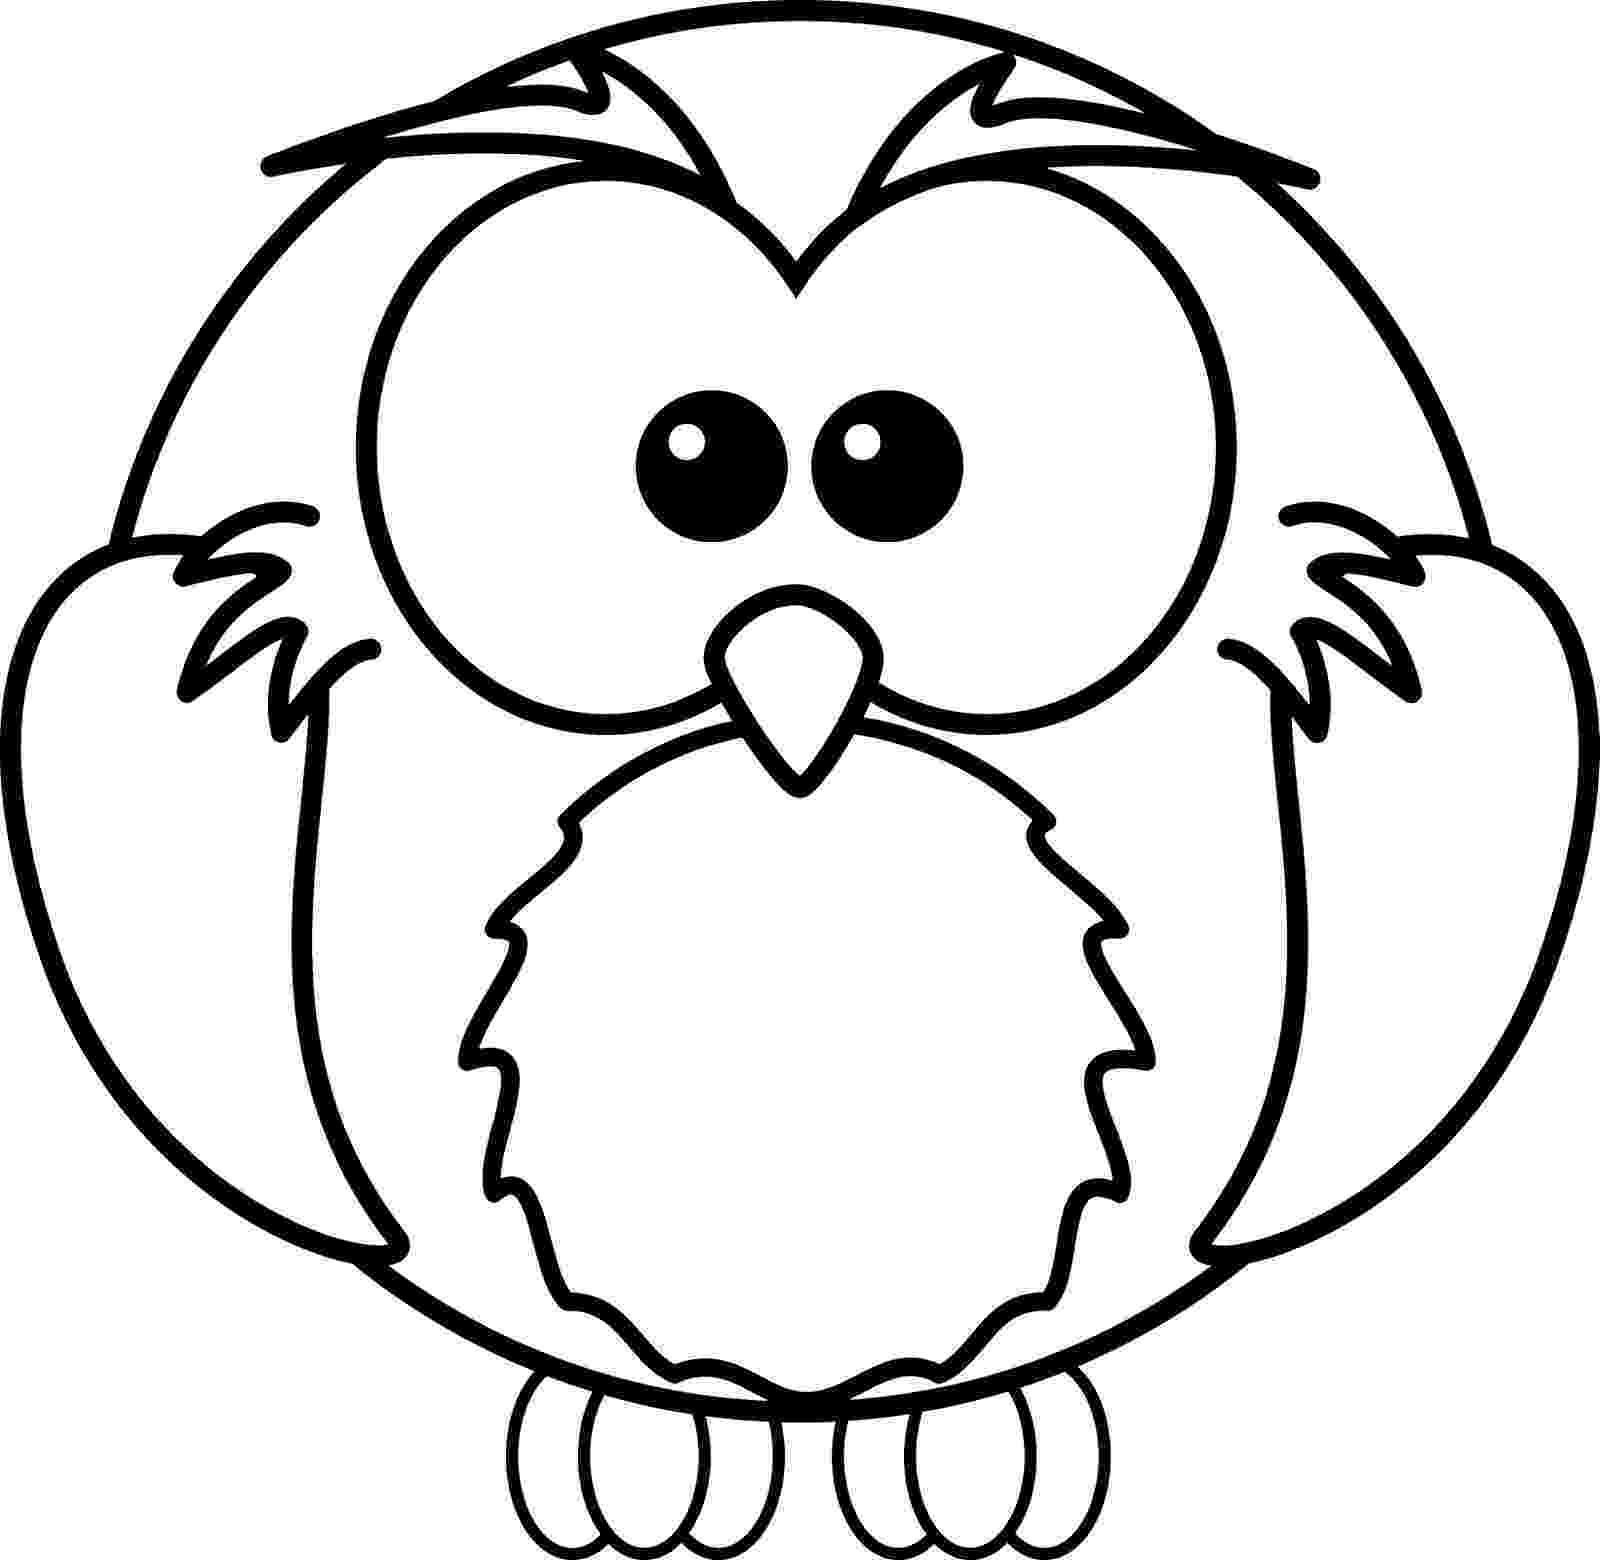 coloring pages baby baby dinosaur coloring pages to download and print for free coloring baby pages